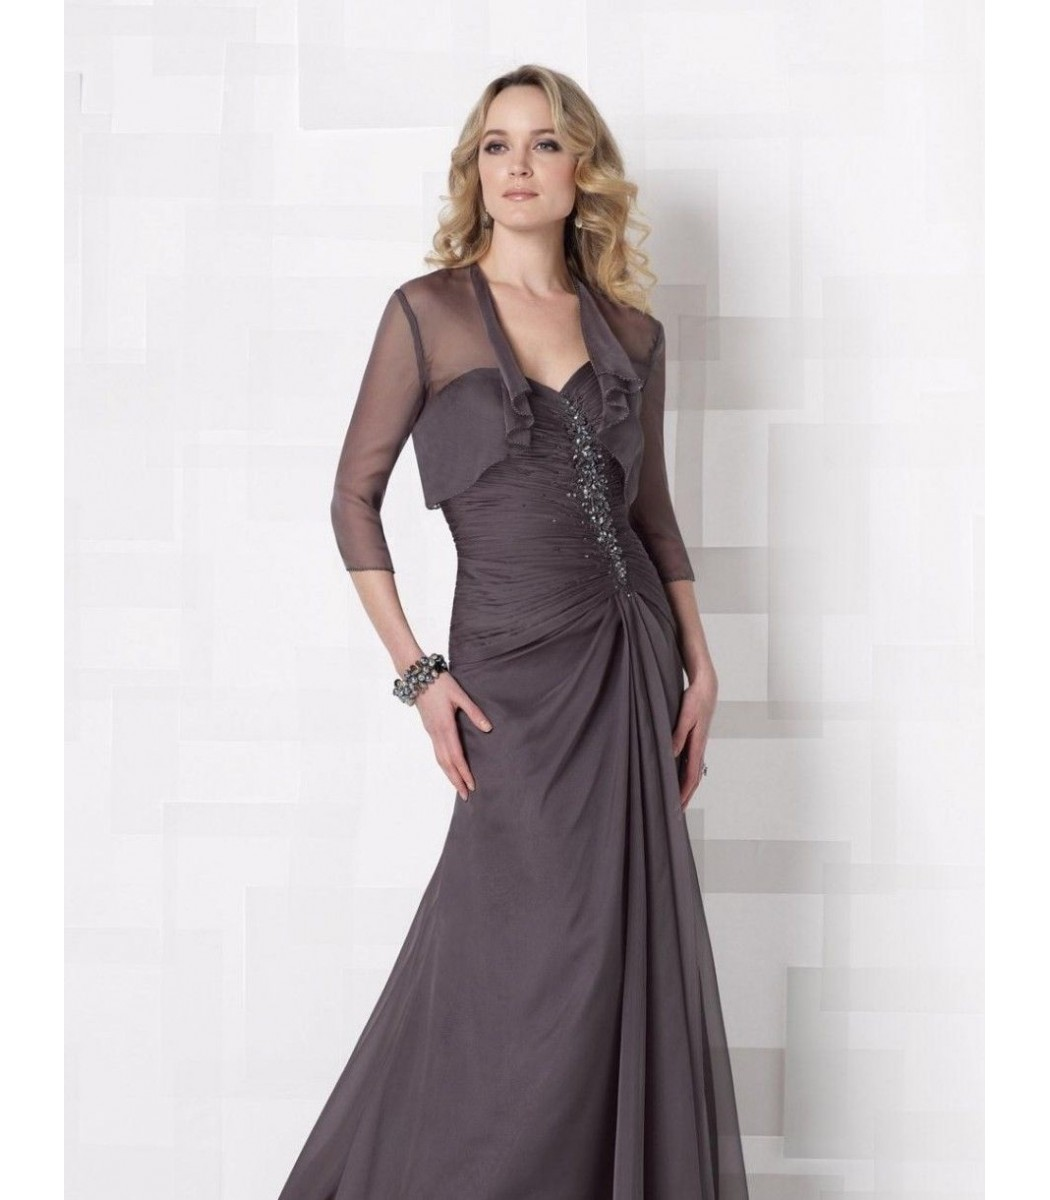 Cameron Blake 212680 Charcoal Gray Formal Evening Dress Gown Size ...